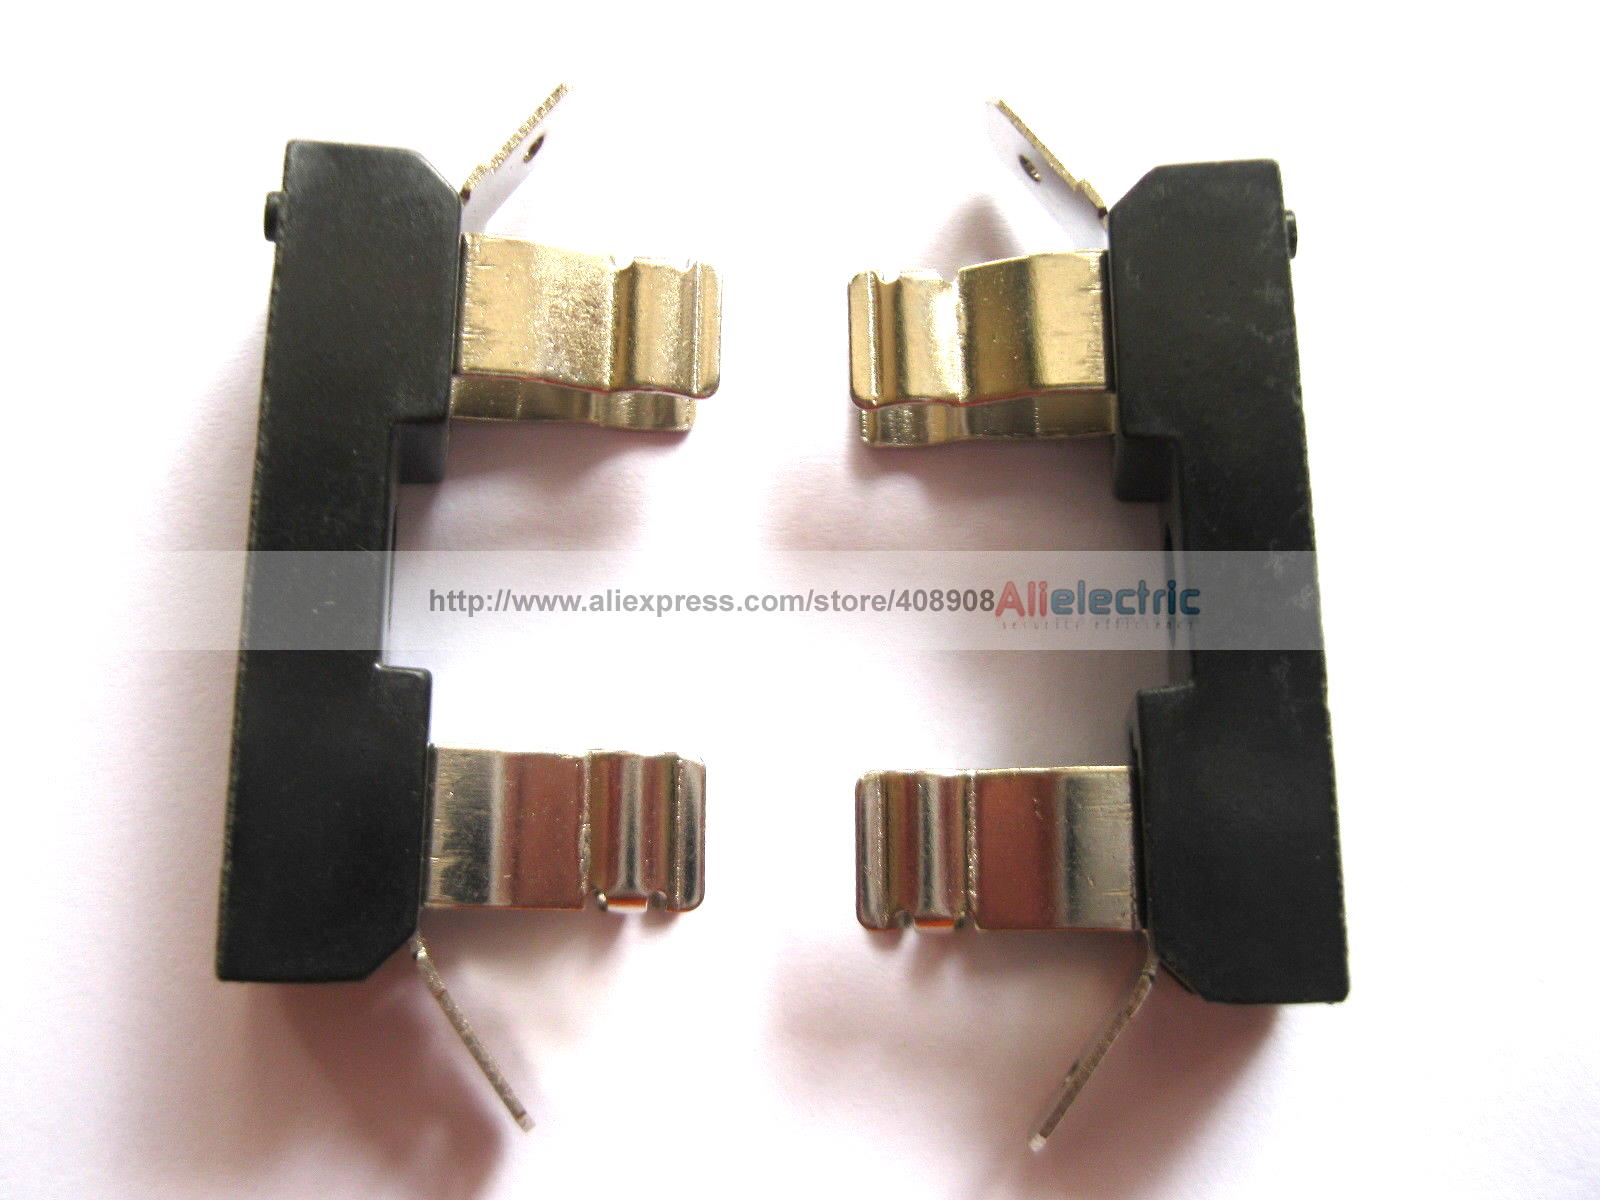 20 Pcs FH 30 30A 250V Fuse Holder Used for 6x30mm Fuse 20 pcs ry series metal 192 celsius 250v 10a cutoffs thermal fuse